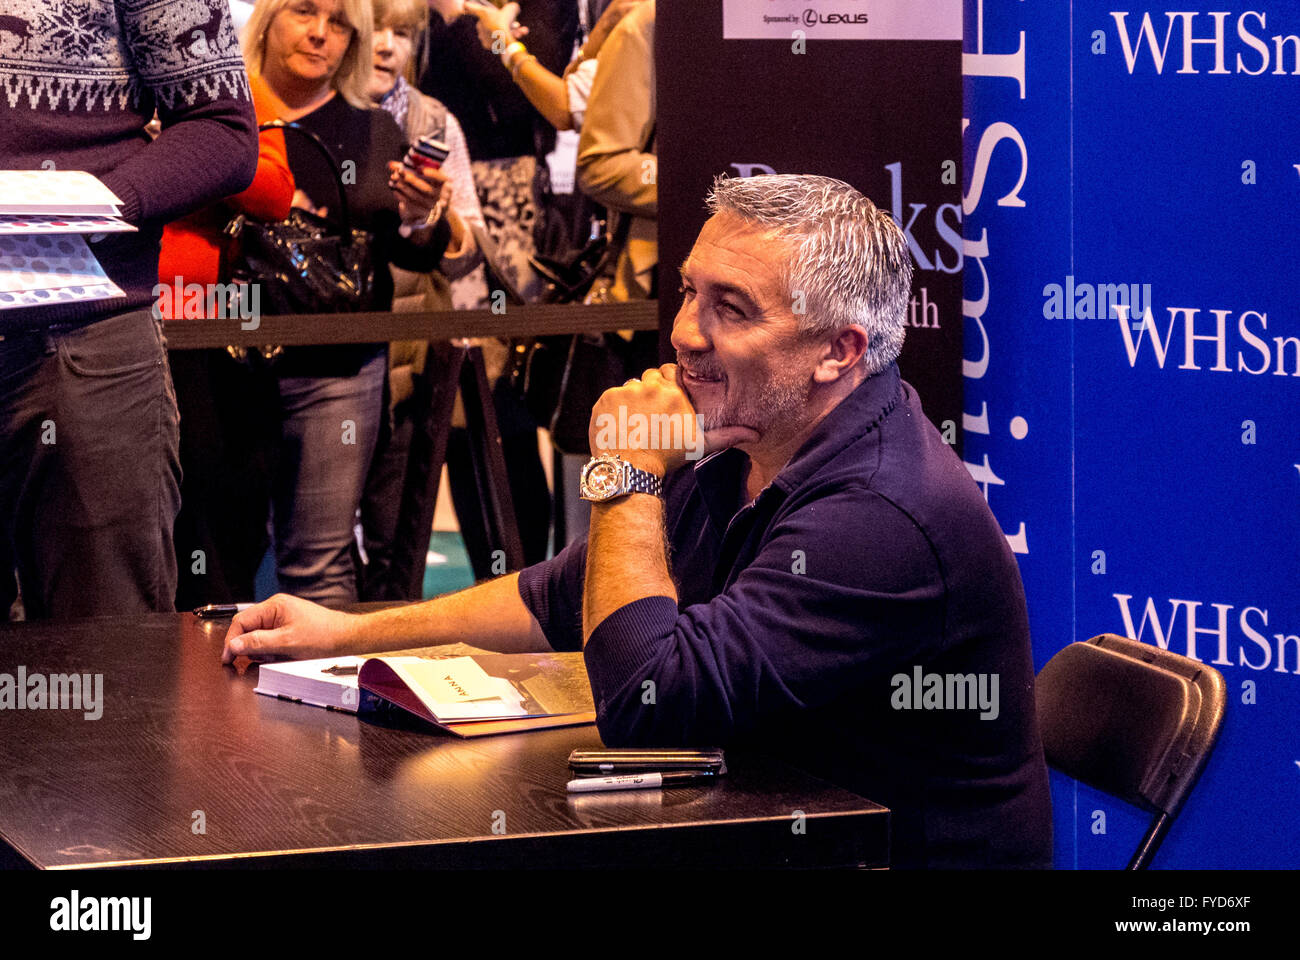 Book Signing Stock Photos & Book Signing Stock Images - Alamy